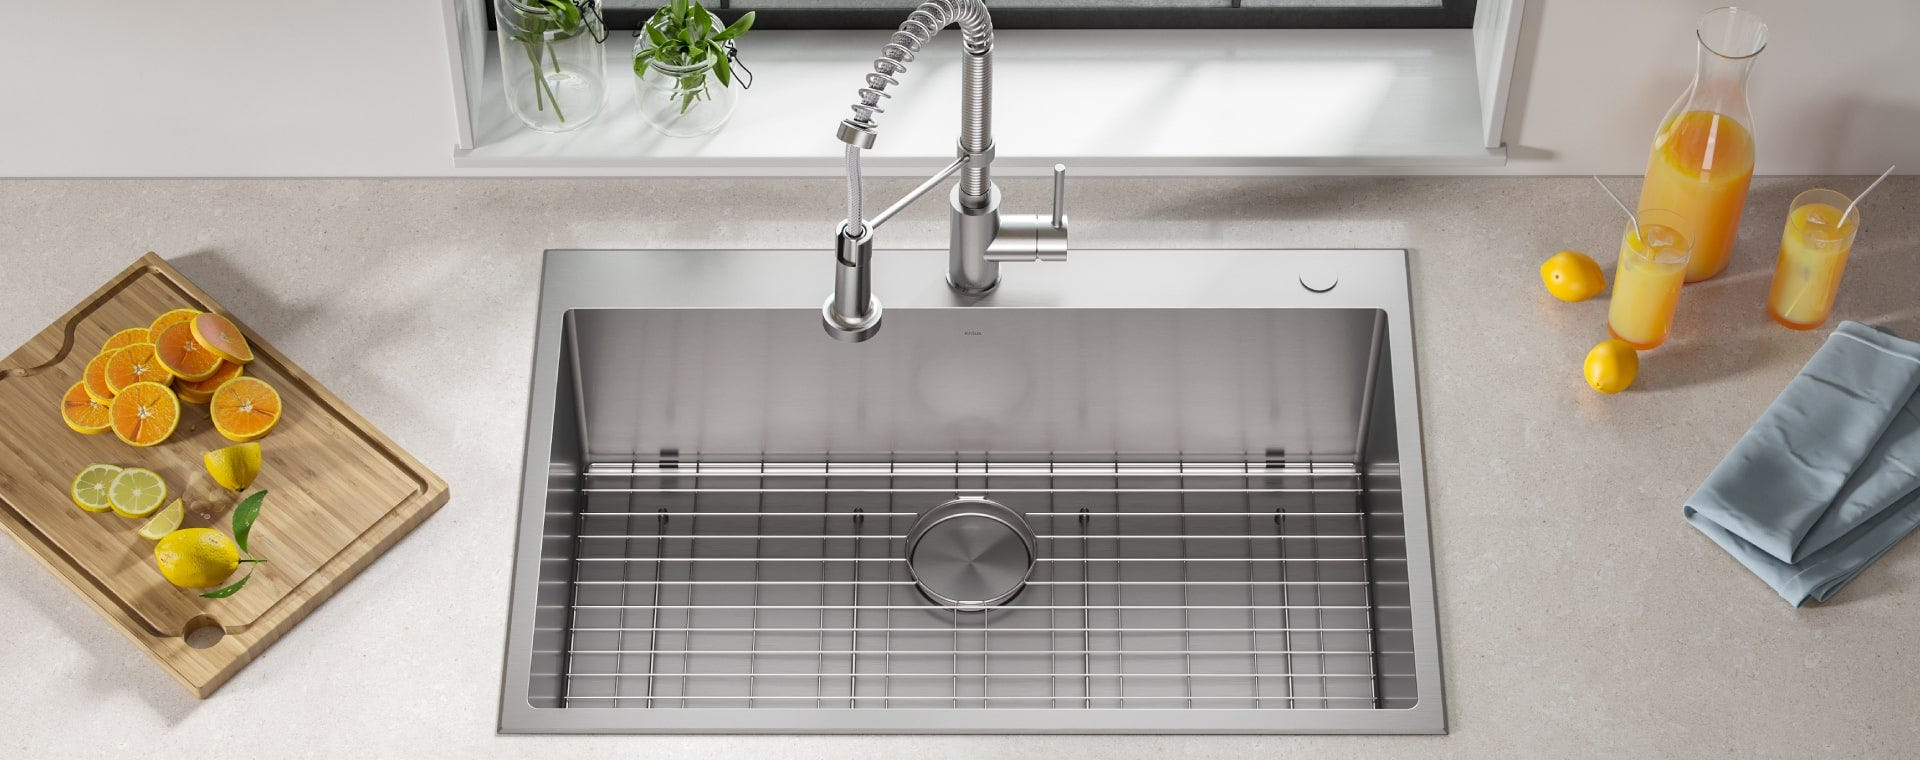 Top-Mount / Drop-In Sinks